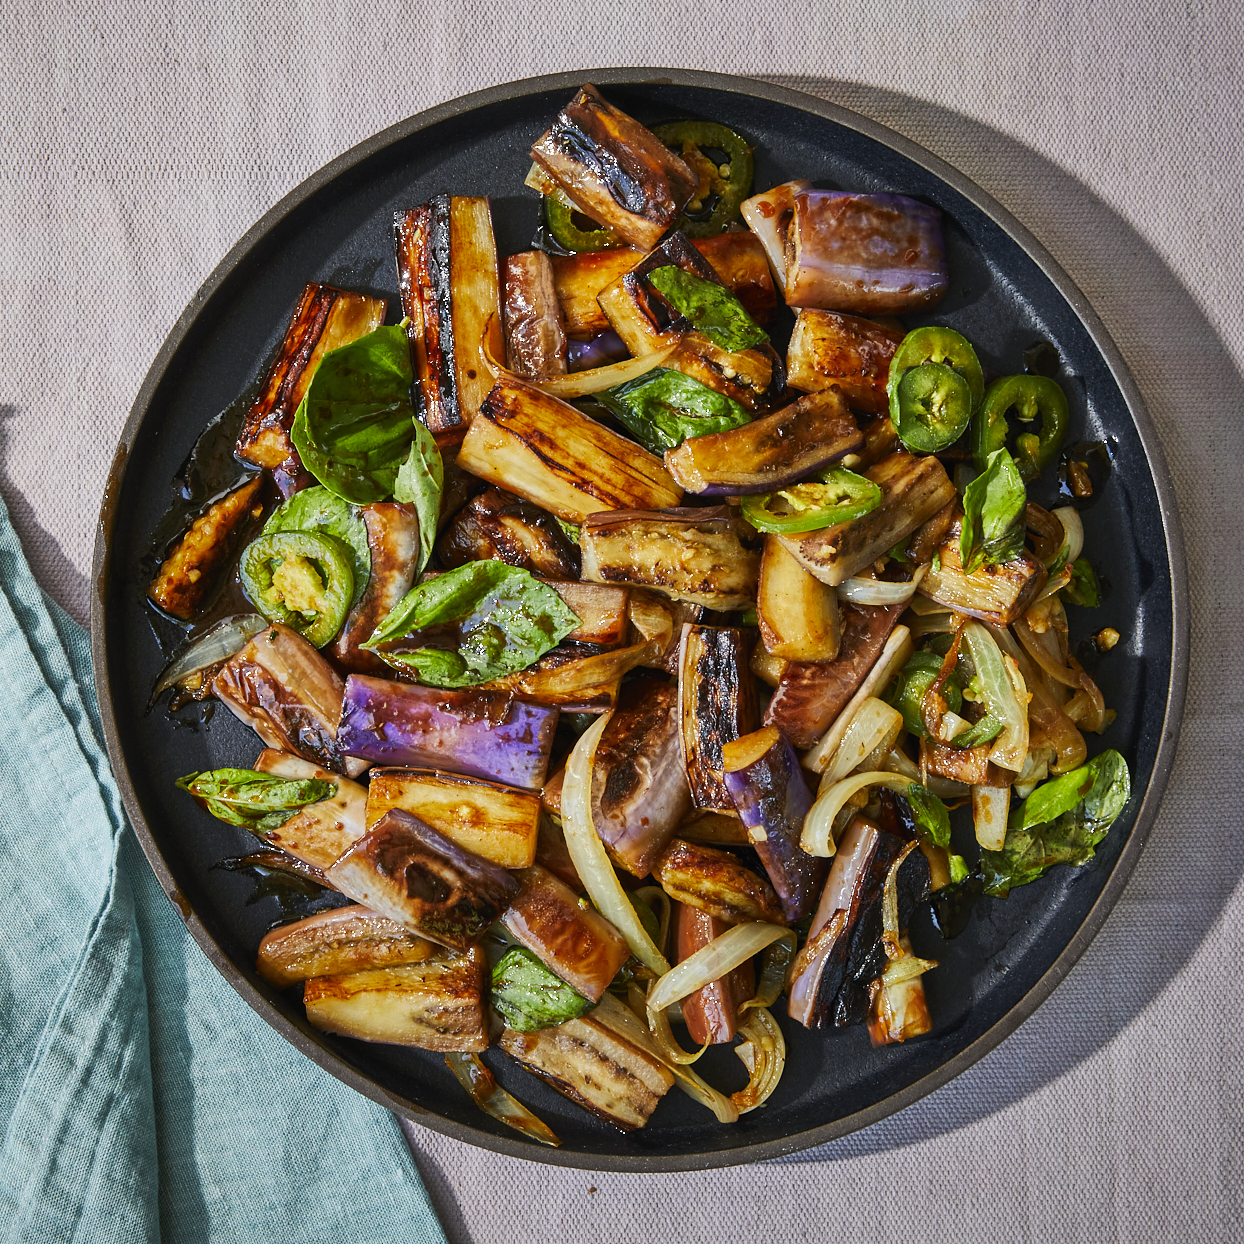 This eggplant stir-fry is easy to make. We call for long and tender Japanese eggplant, but regular eggplant will work well too, cut into 1-inch pieces. Jalapeño peppers can vary from mild to very spicy. If you need to cut the heat, opt for small sweet peppers in their place. Source: EatingWell.com, May 2020